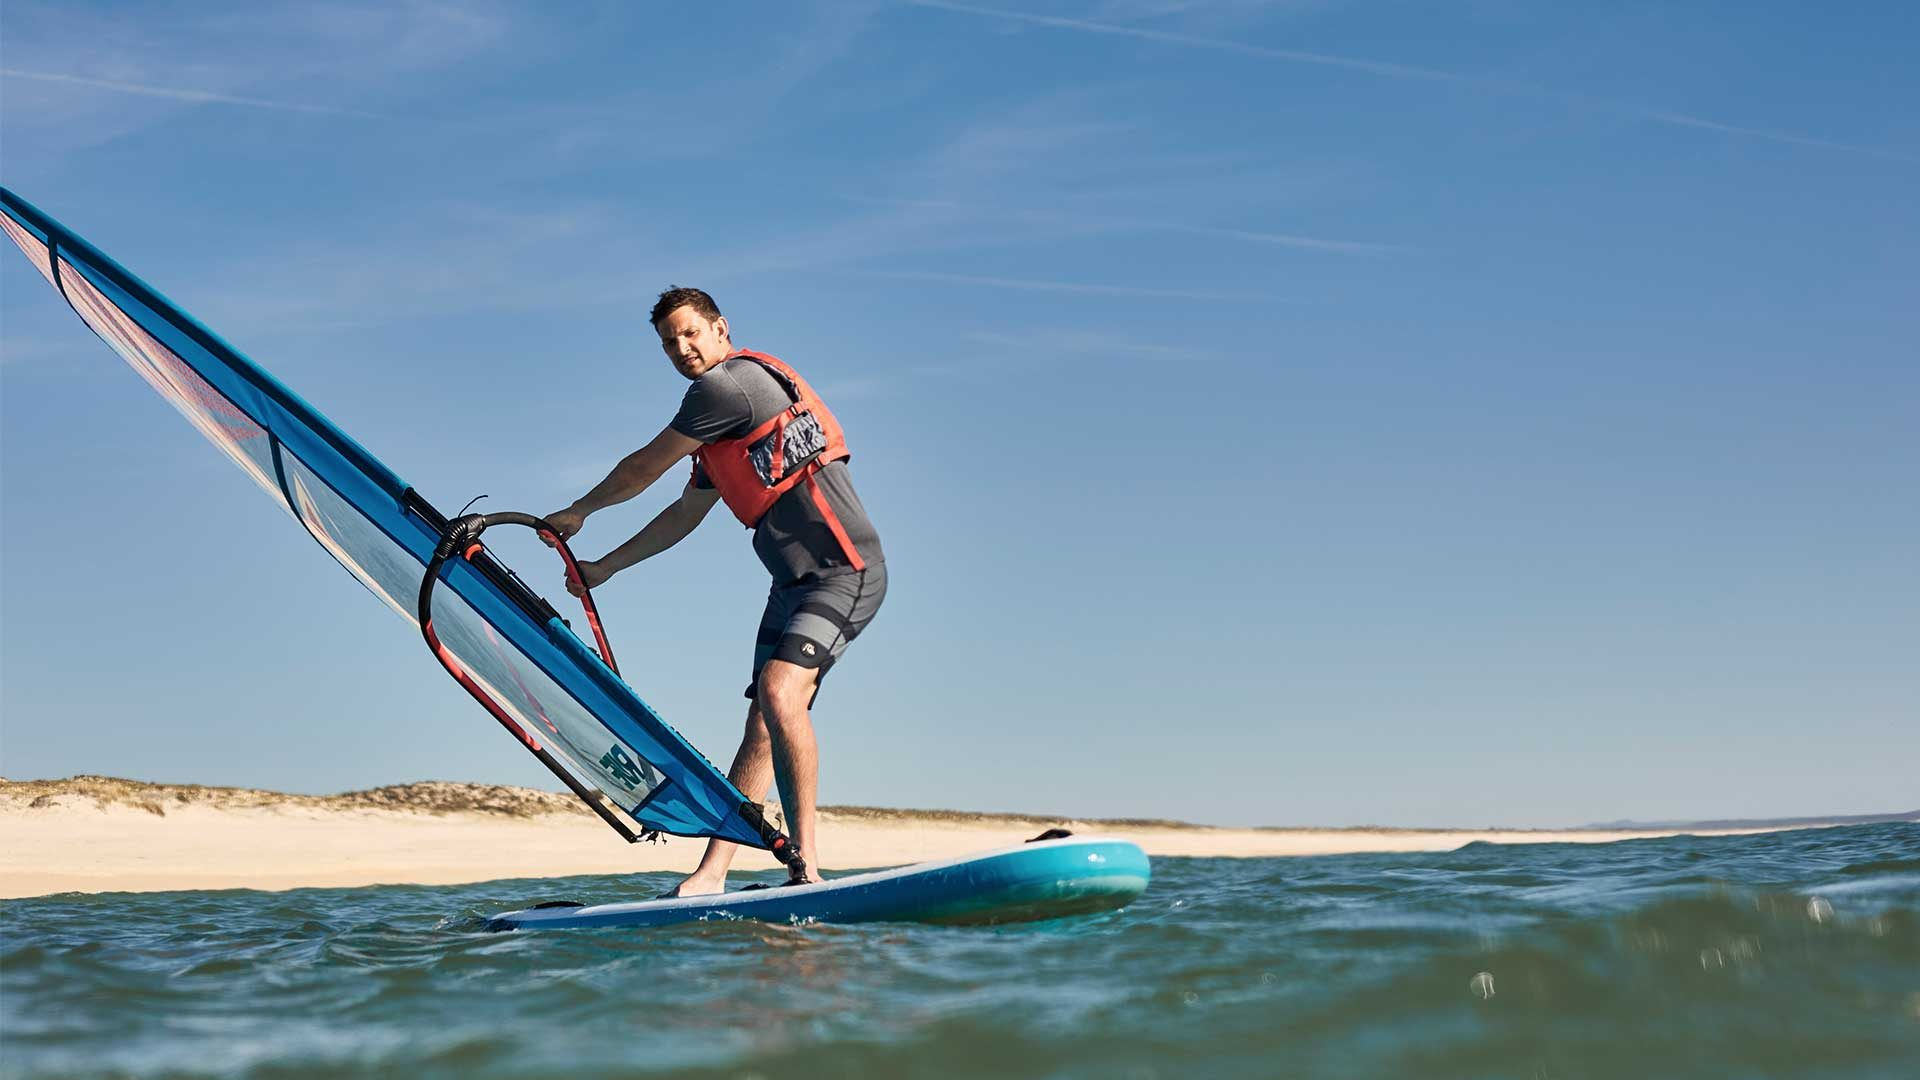 redpaddleco-107-wind-inflatable-paddle-board-desktop-gallery-valve